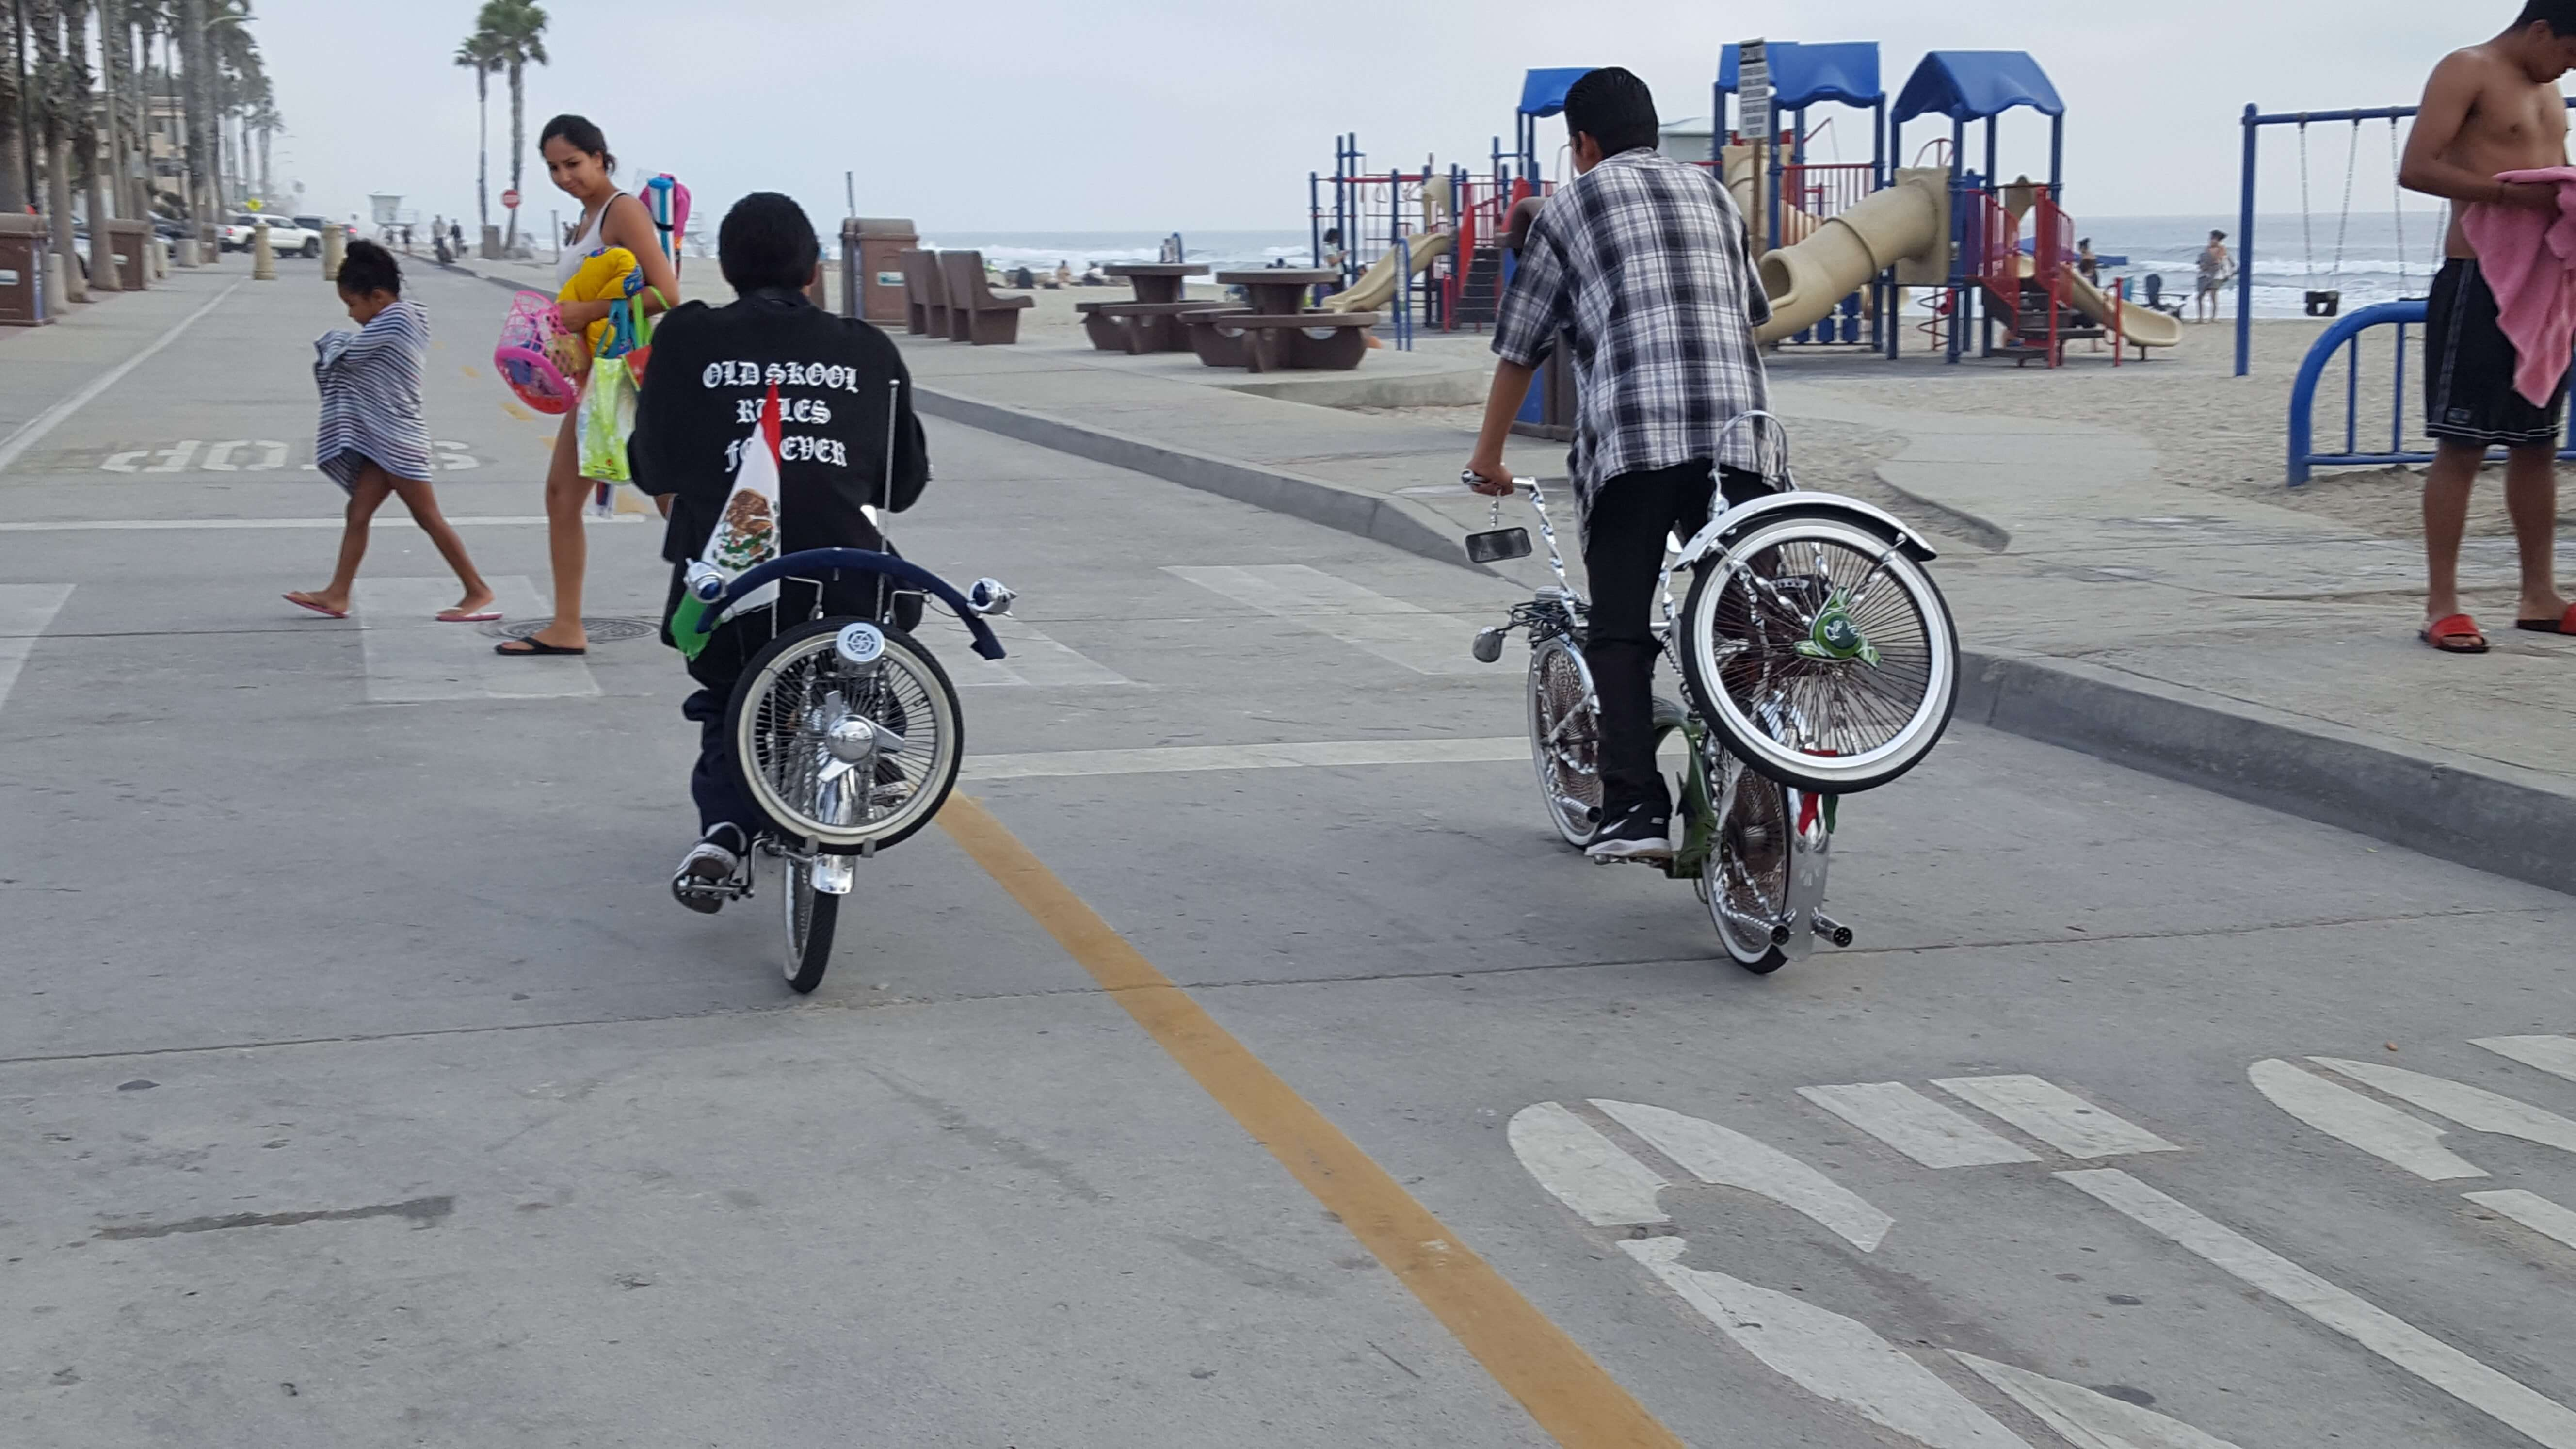 Decked out bicycles at Oceanside Pier